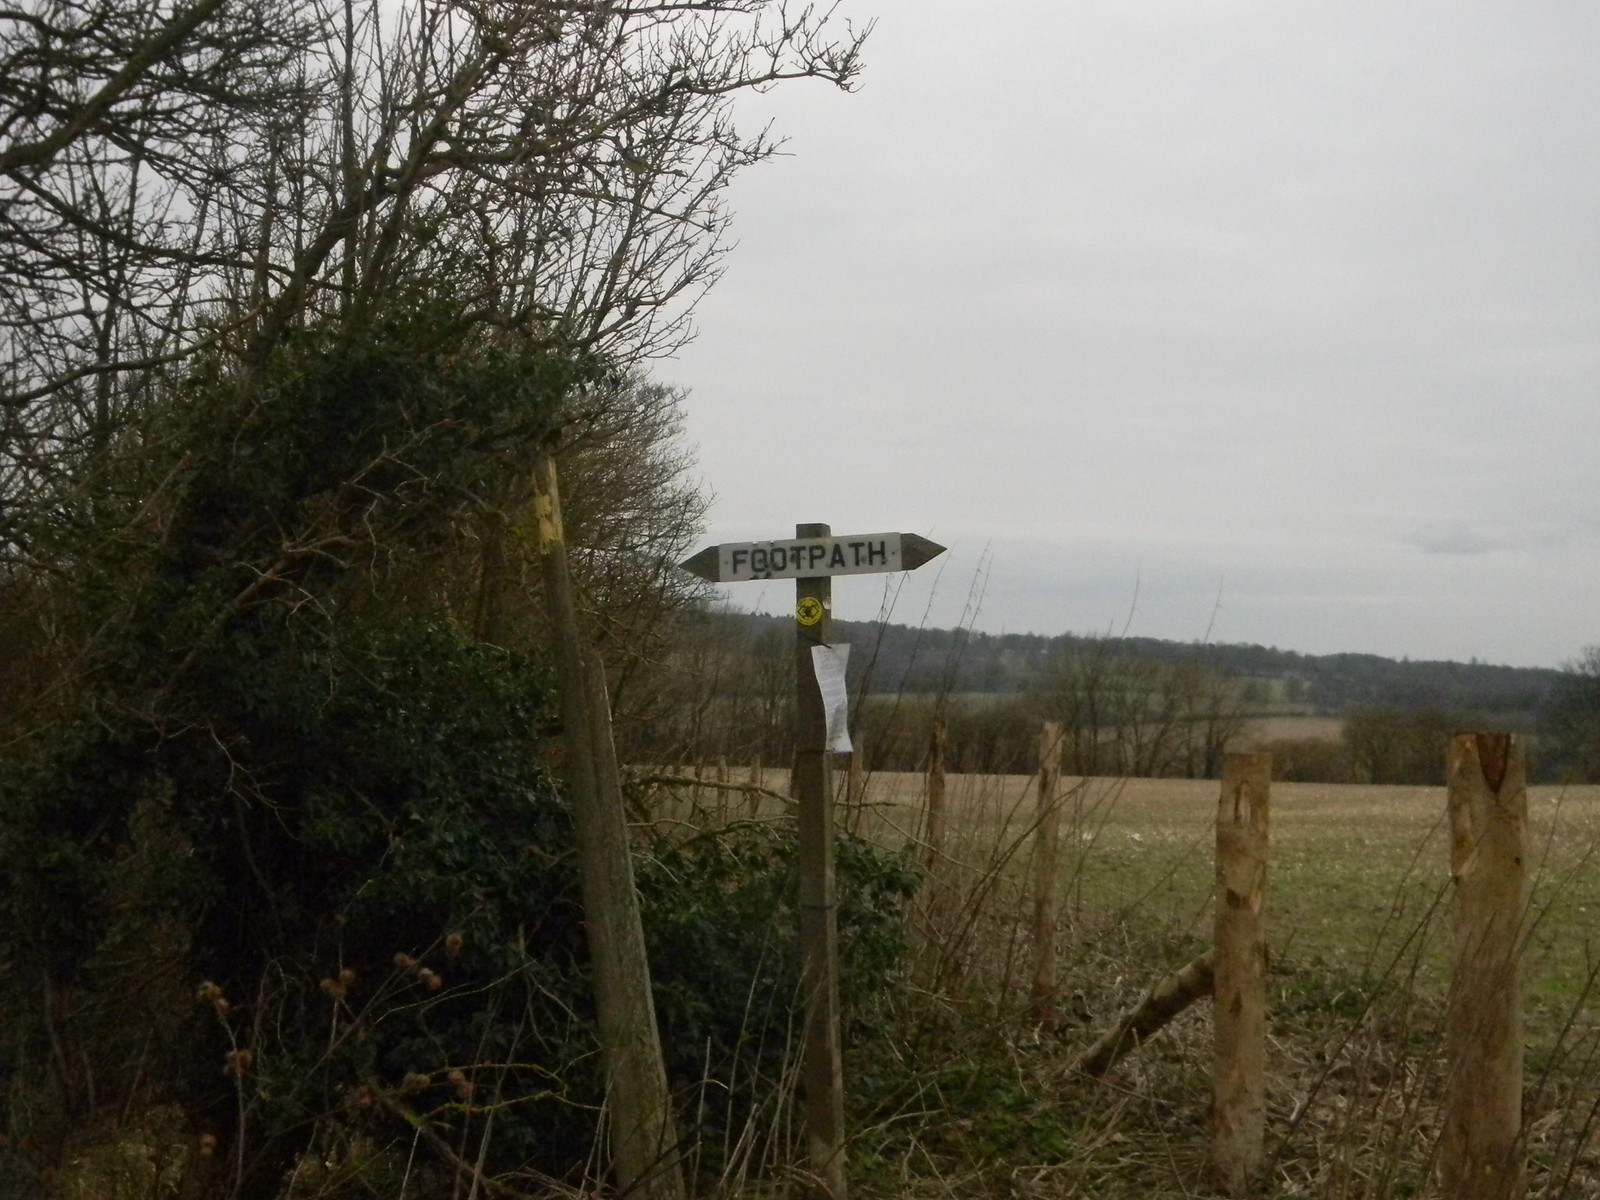 Where's the path? Chilham Circular